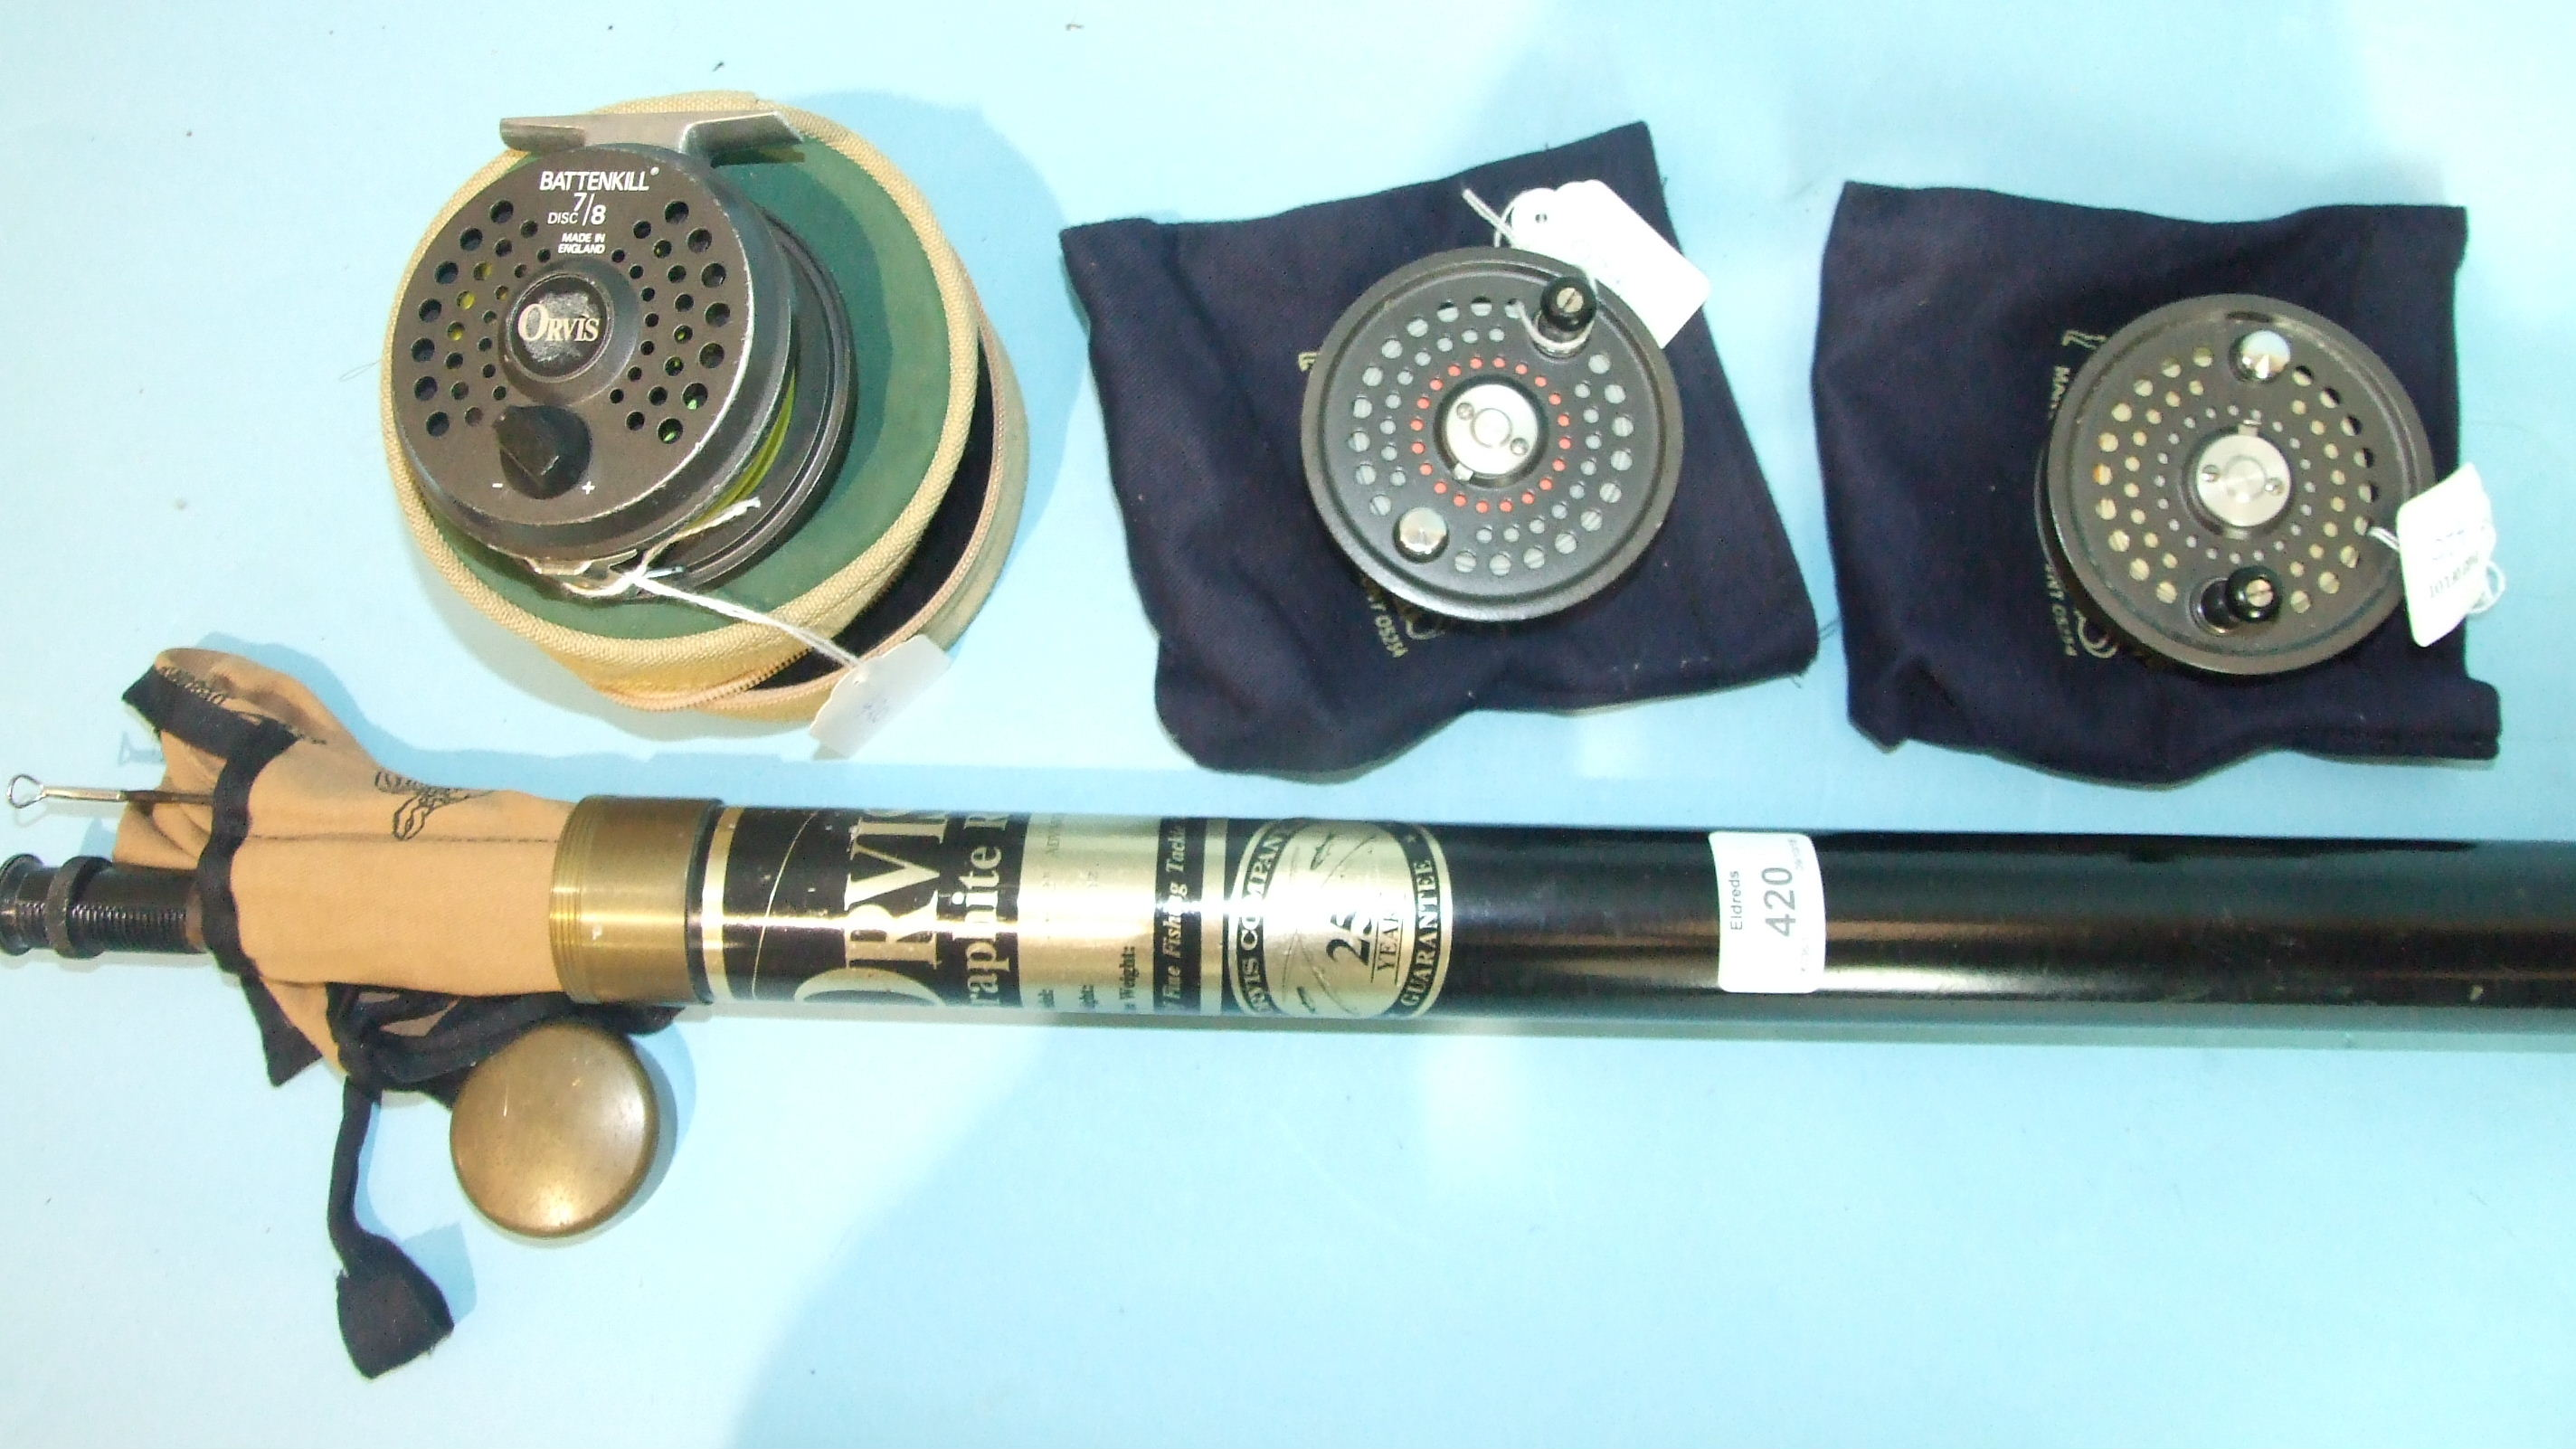 """Lot 420 - An Orvis Battenkill 7/8 3¼"""" fly reel in case and two spare spools and an Orvis 9' 3"""" graphite two-"""